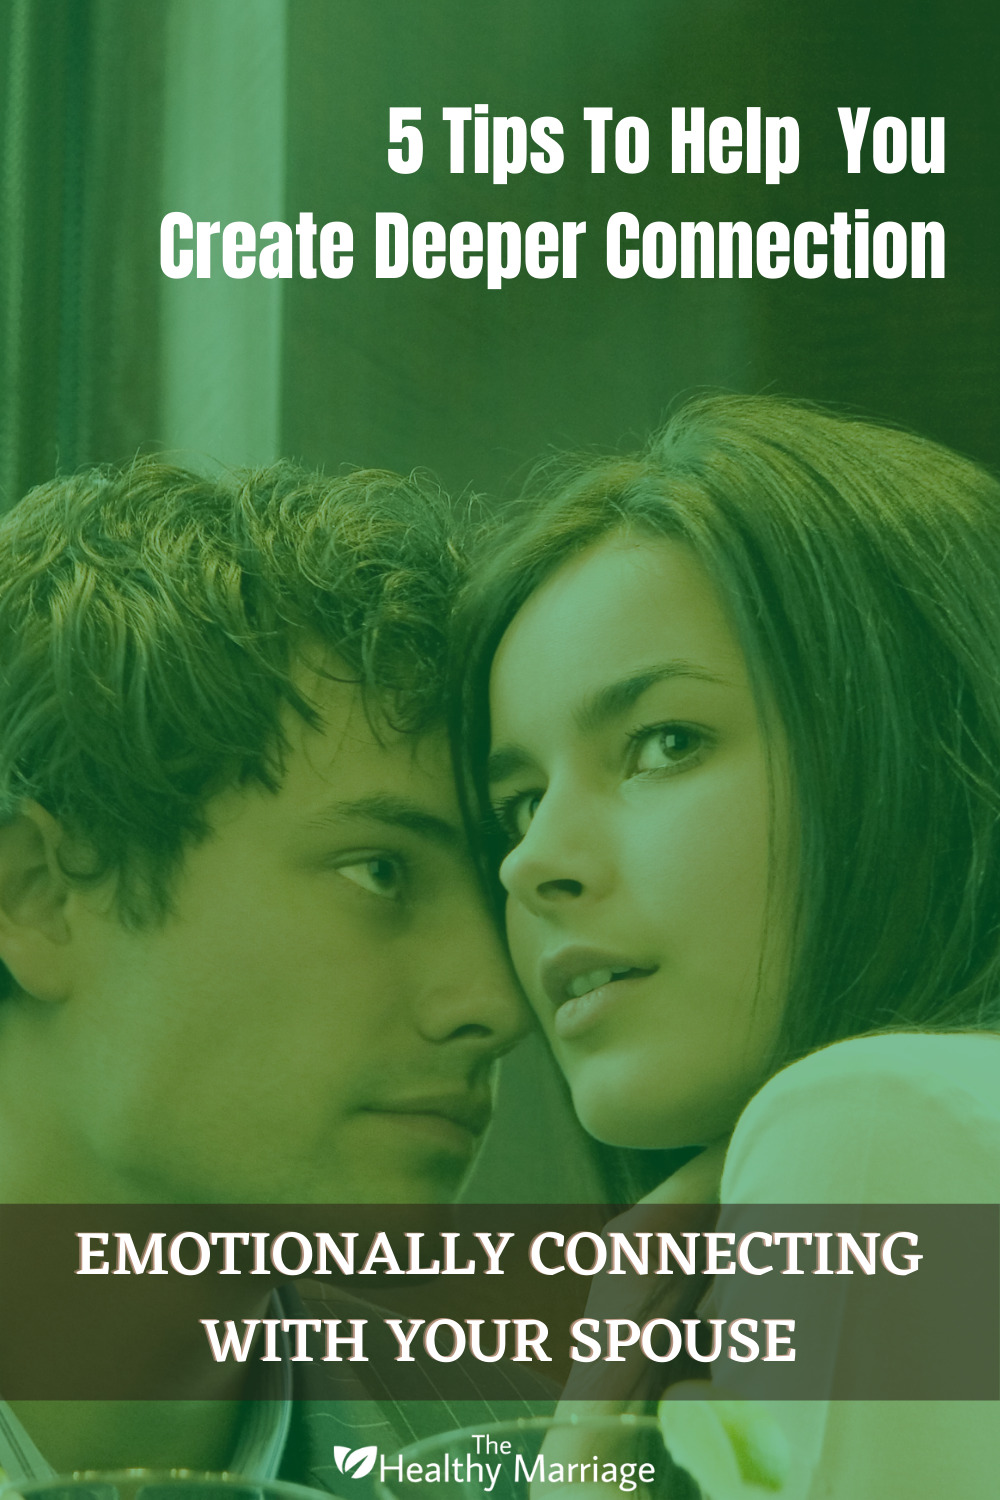 Emotionally Connecting With Your Spouse Pinterest Pin